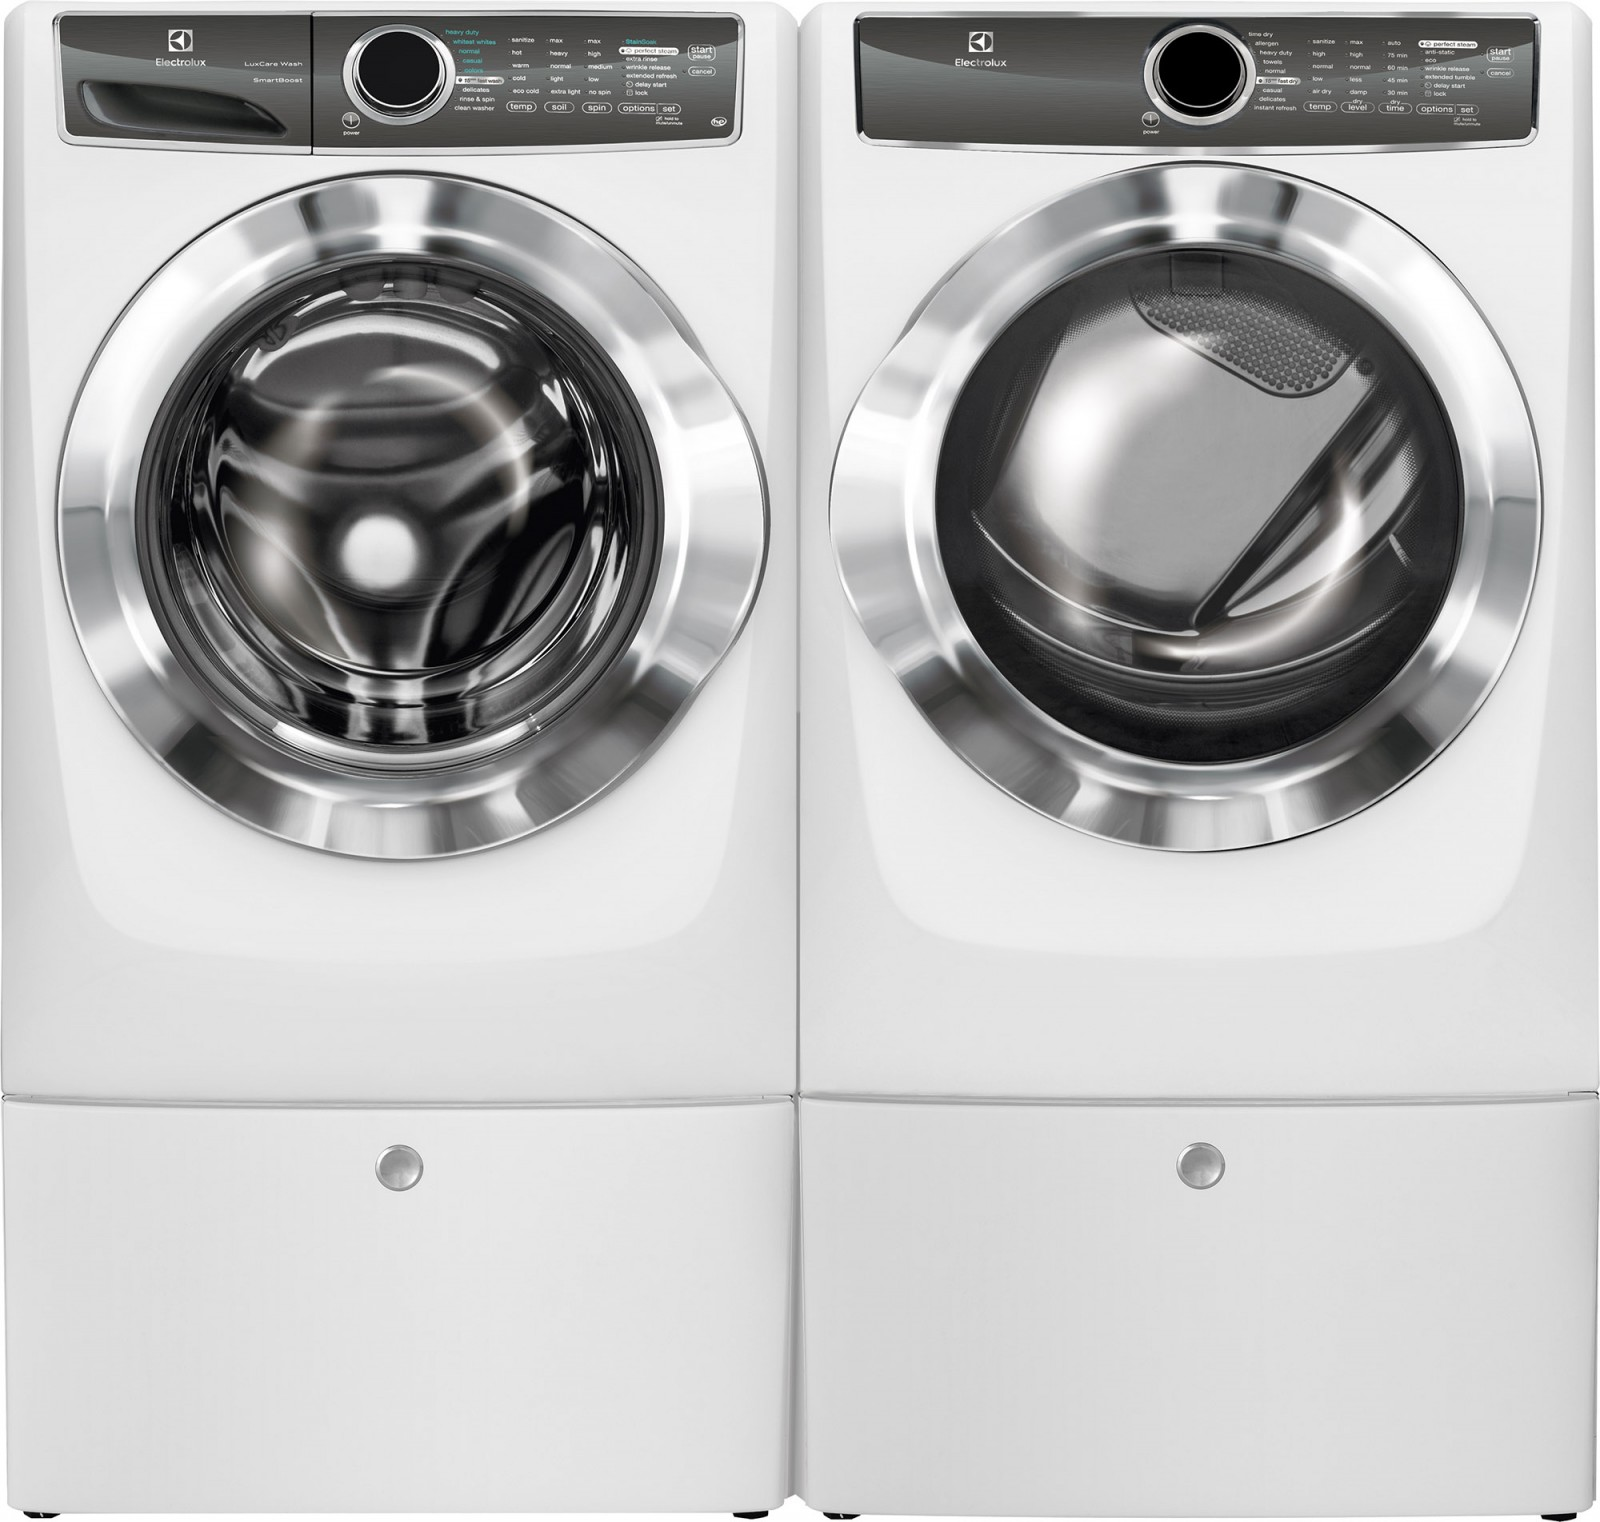 Washing Machines And Dryers ~ Kbis news new electrolux washing machine redefines clean